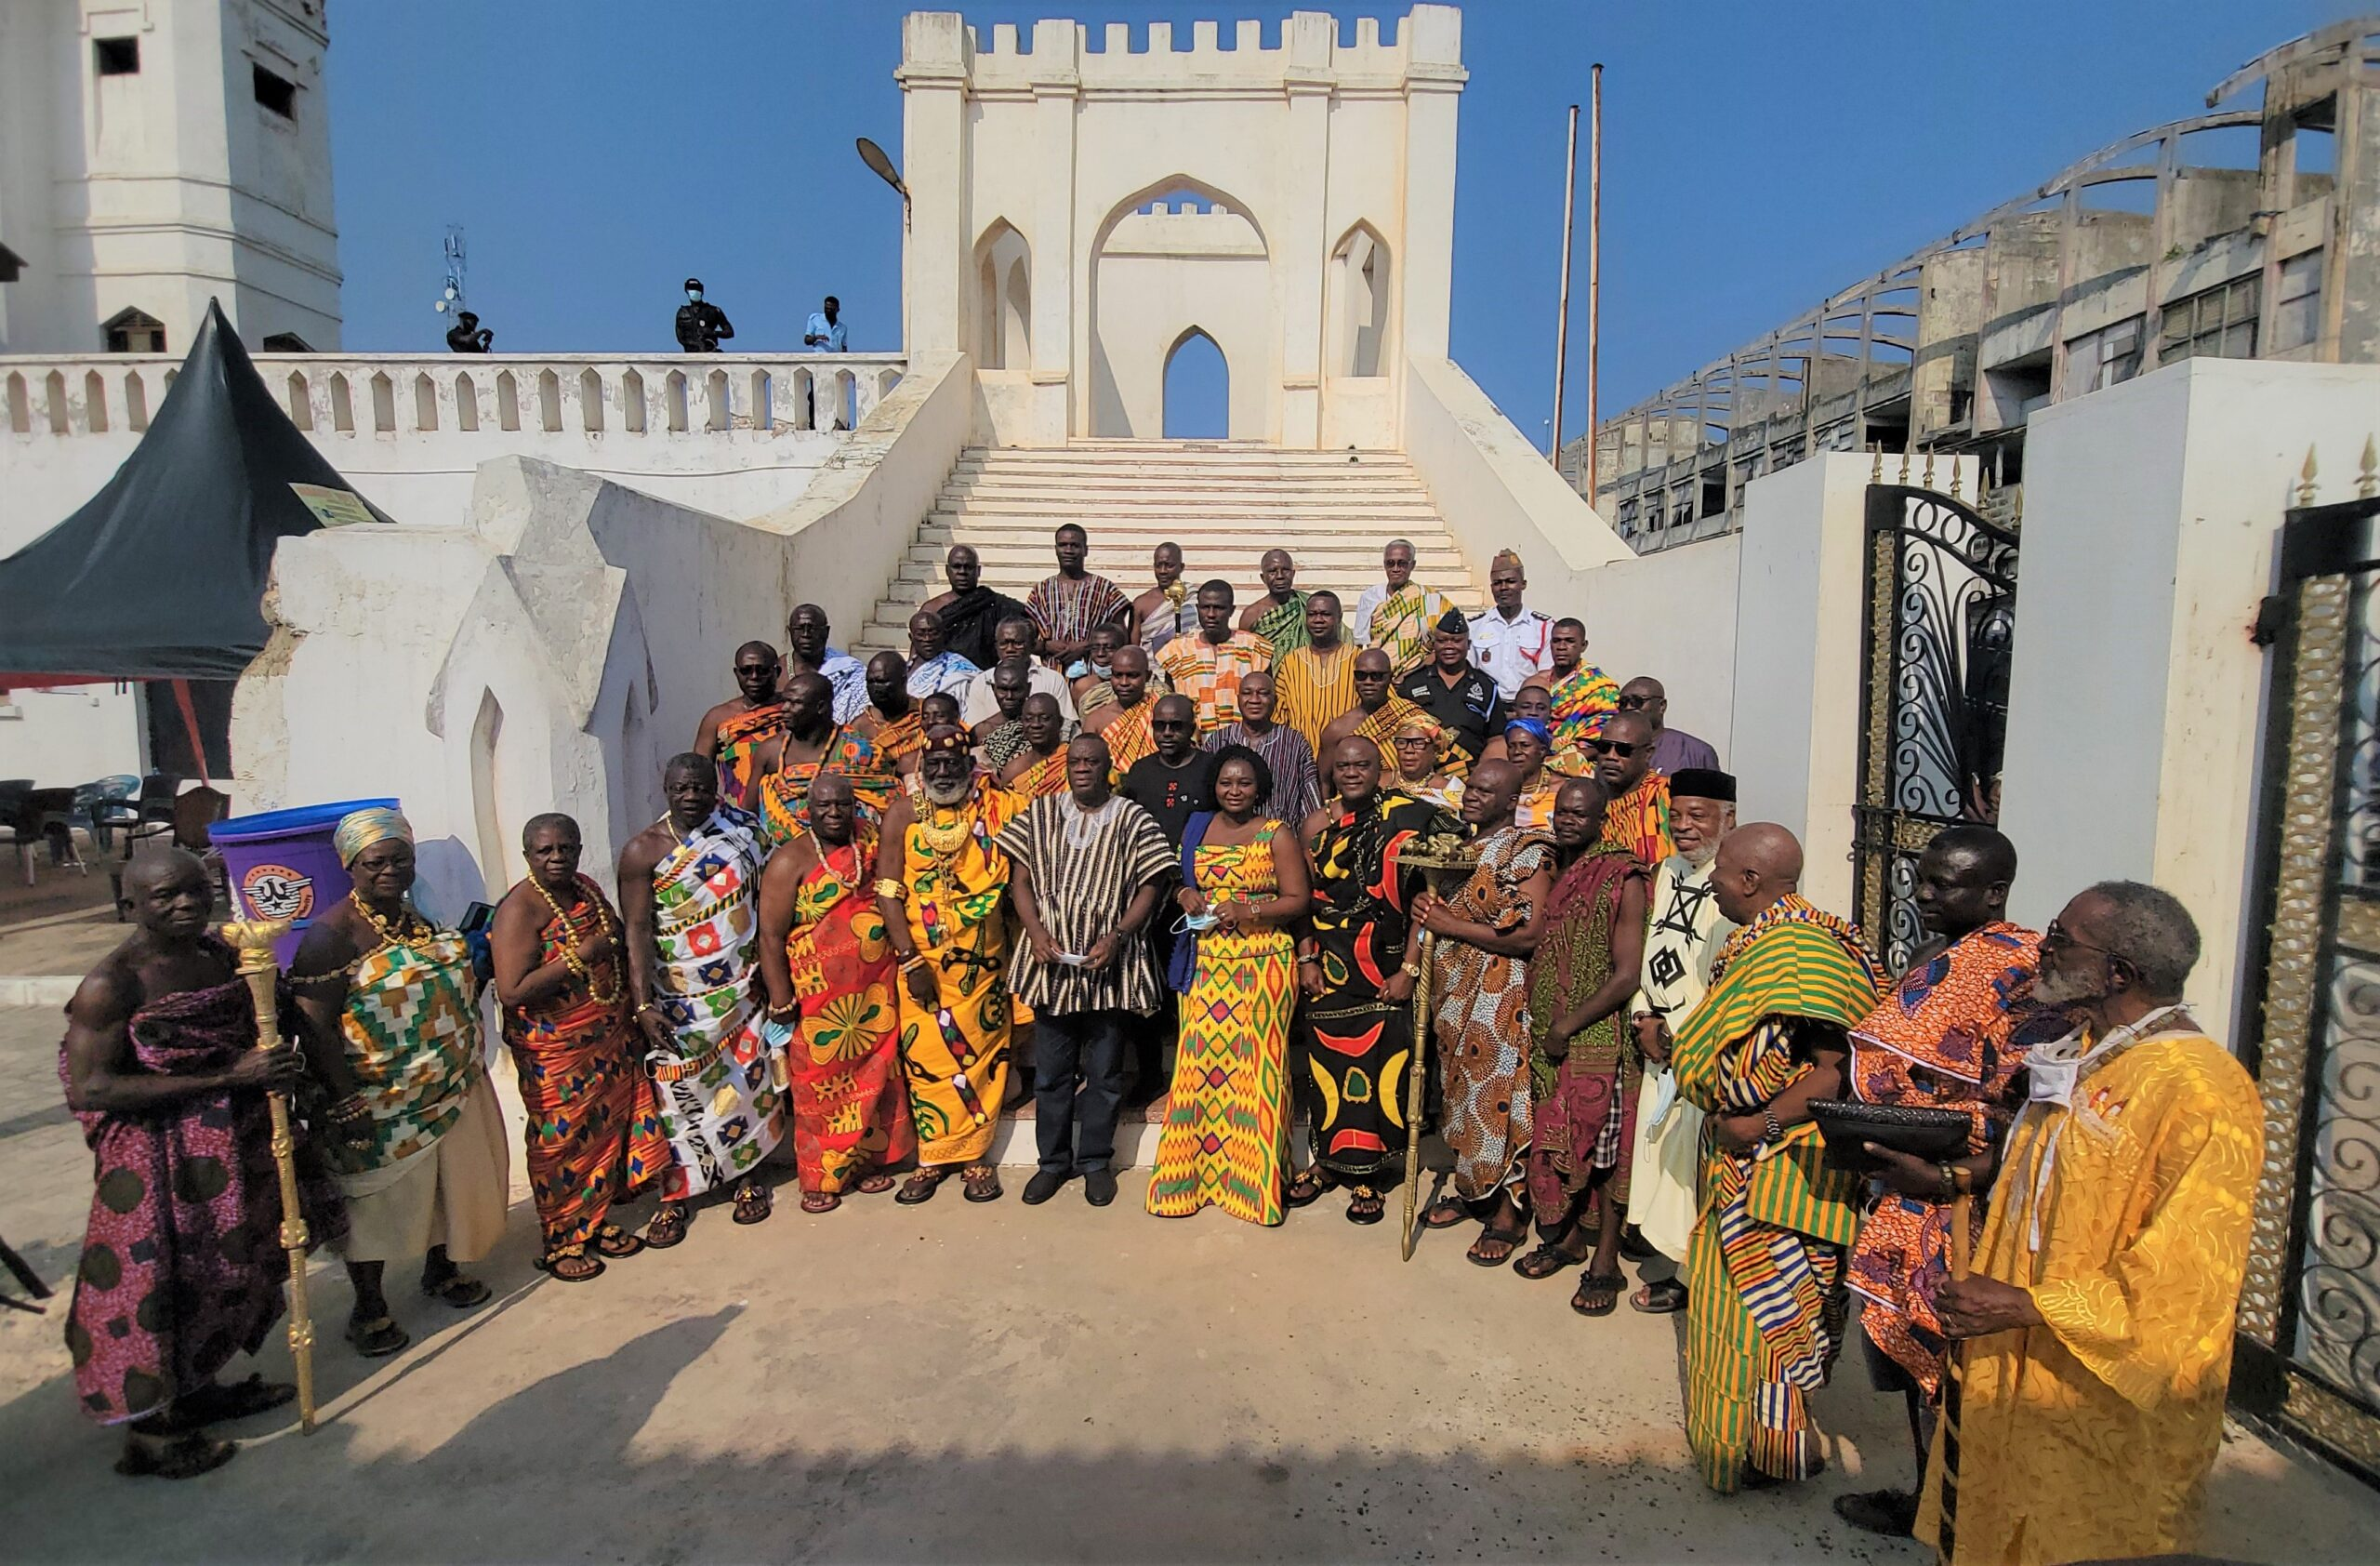 PANAFEST 2021: Celebrating the African Family through Pan-Africanism